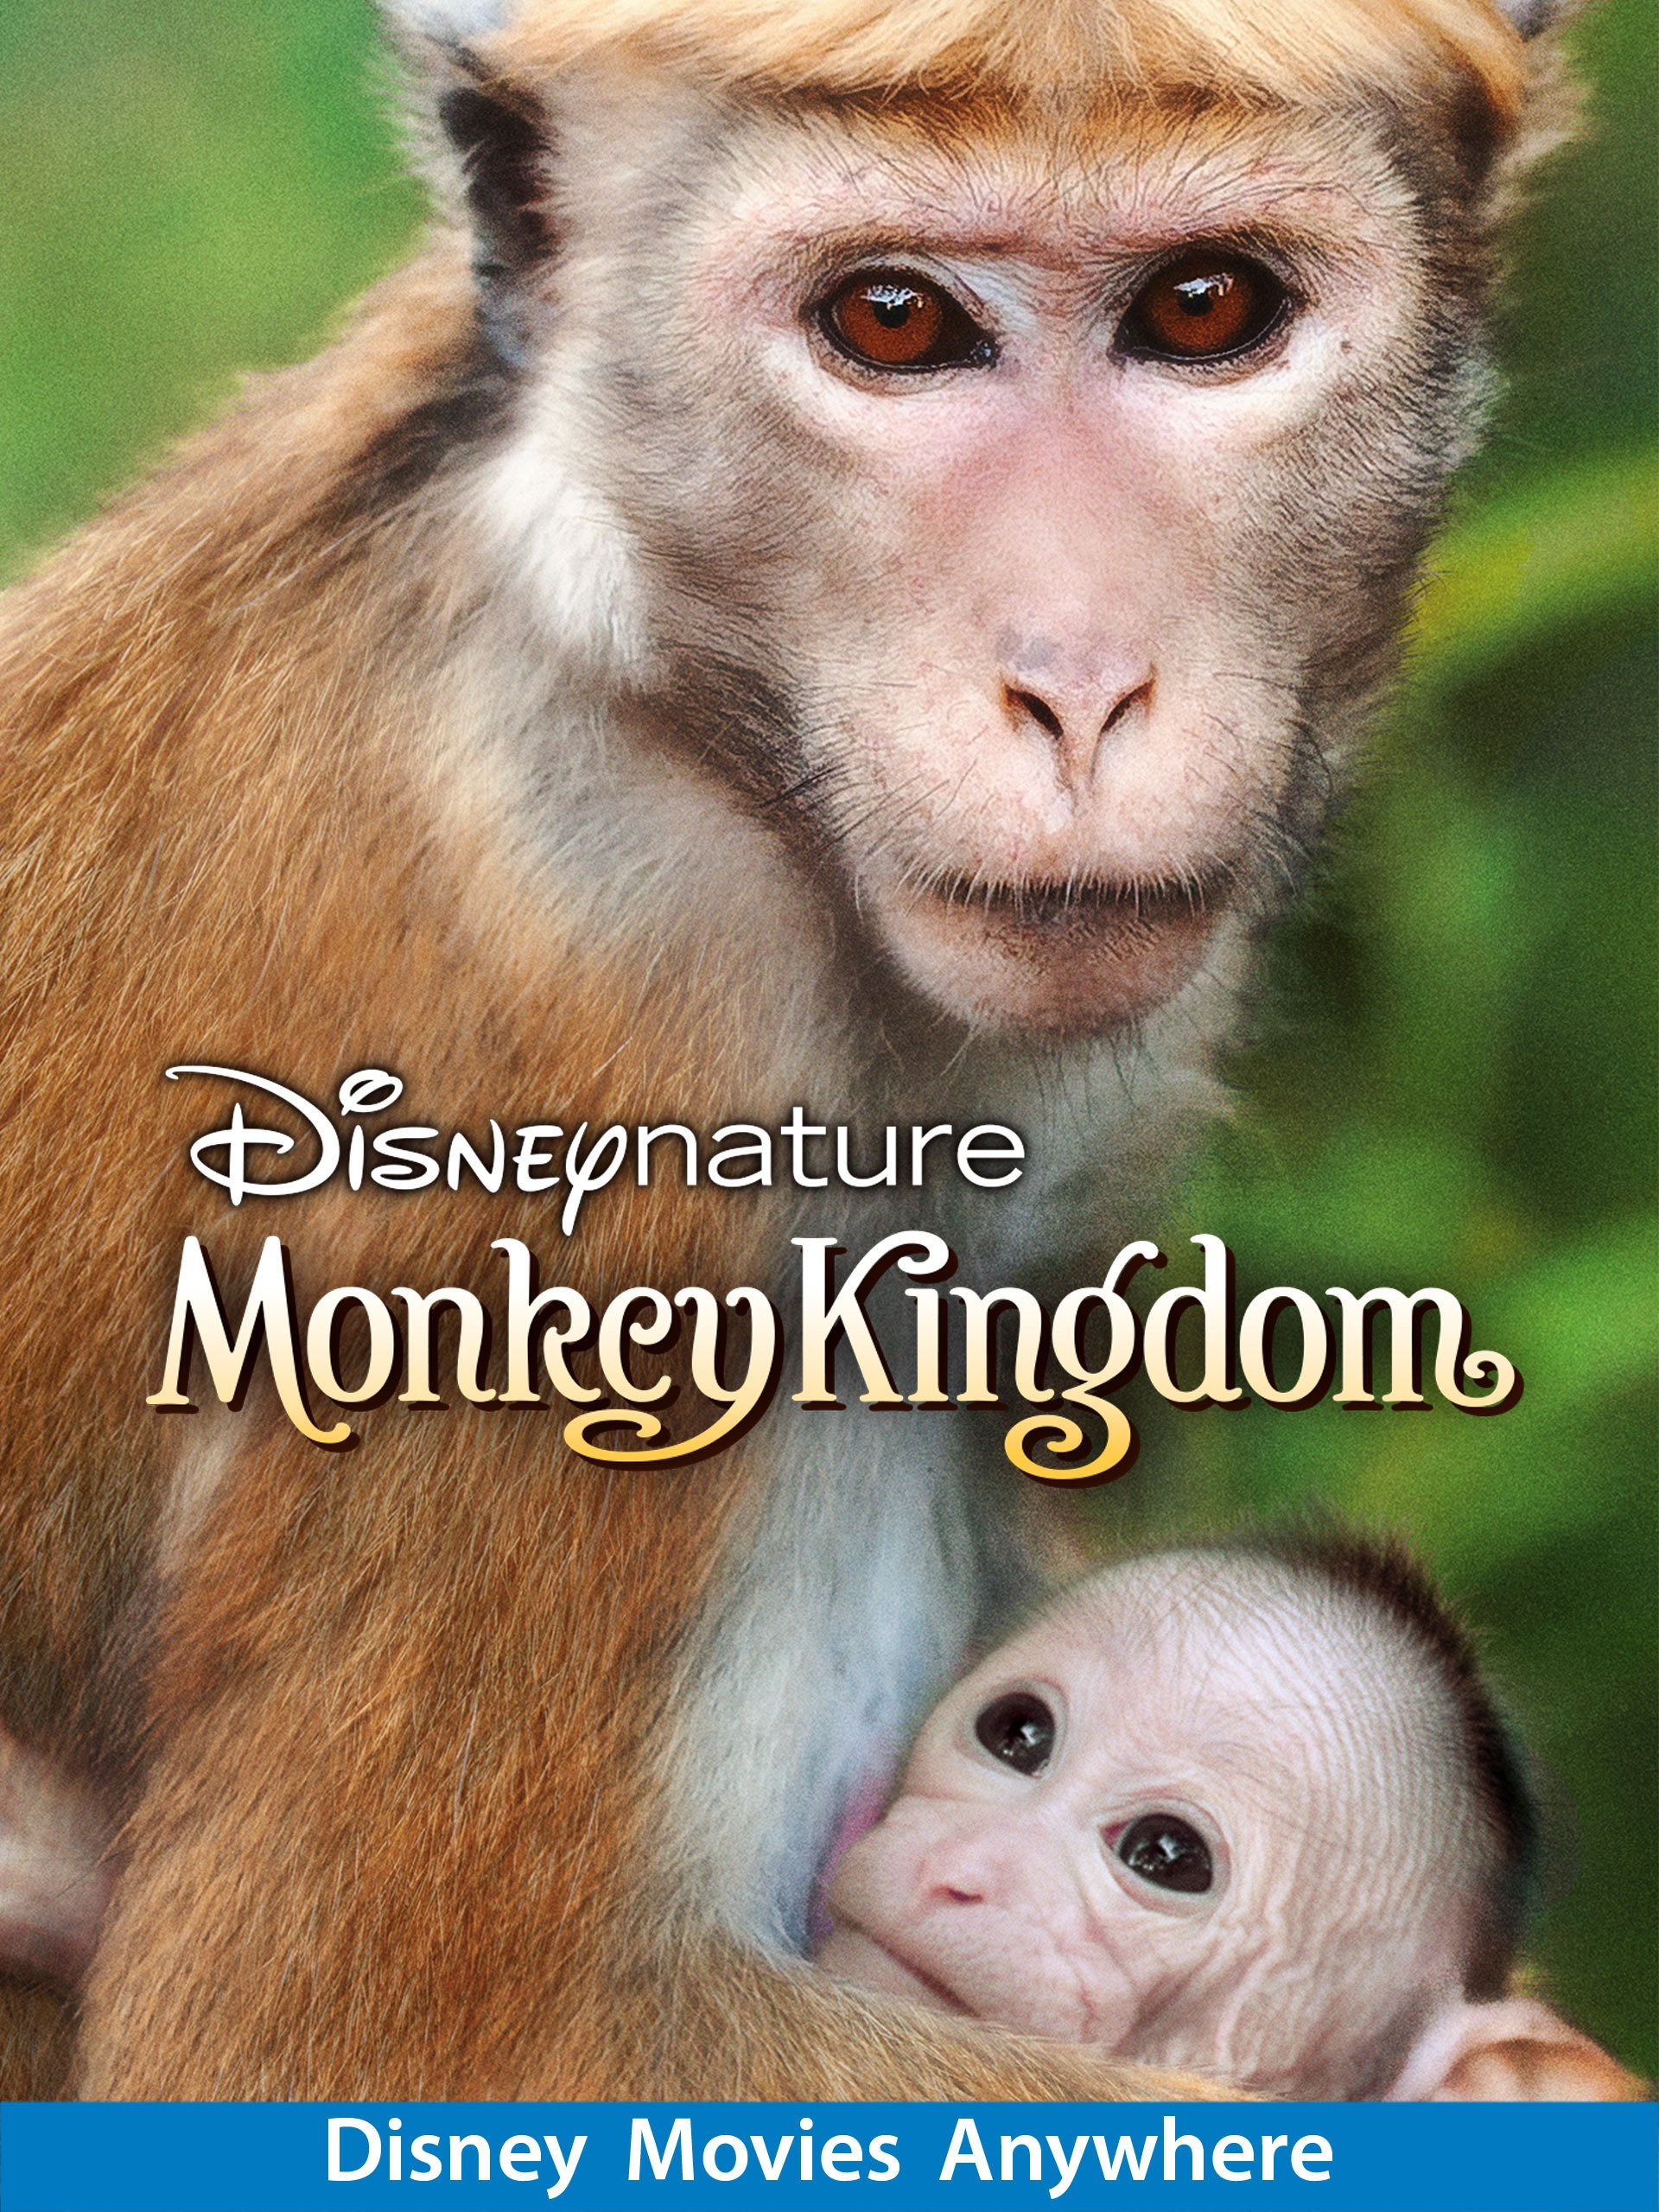 Monkey Kingdom: Family-Friendly Nature Film From Disneynature ad